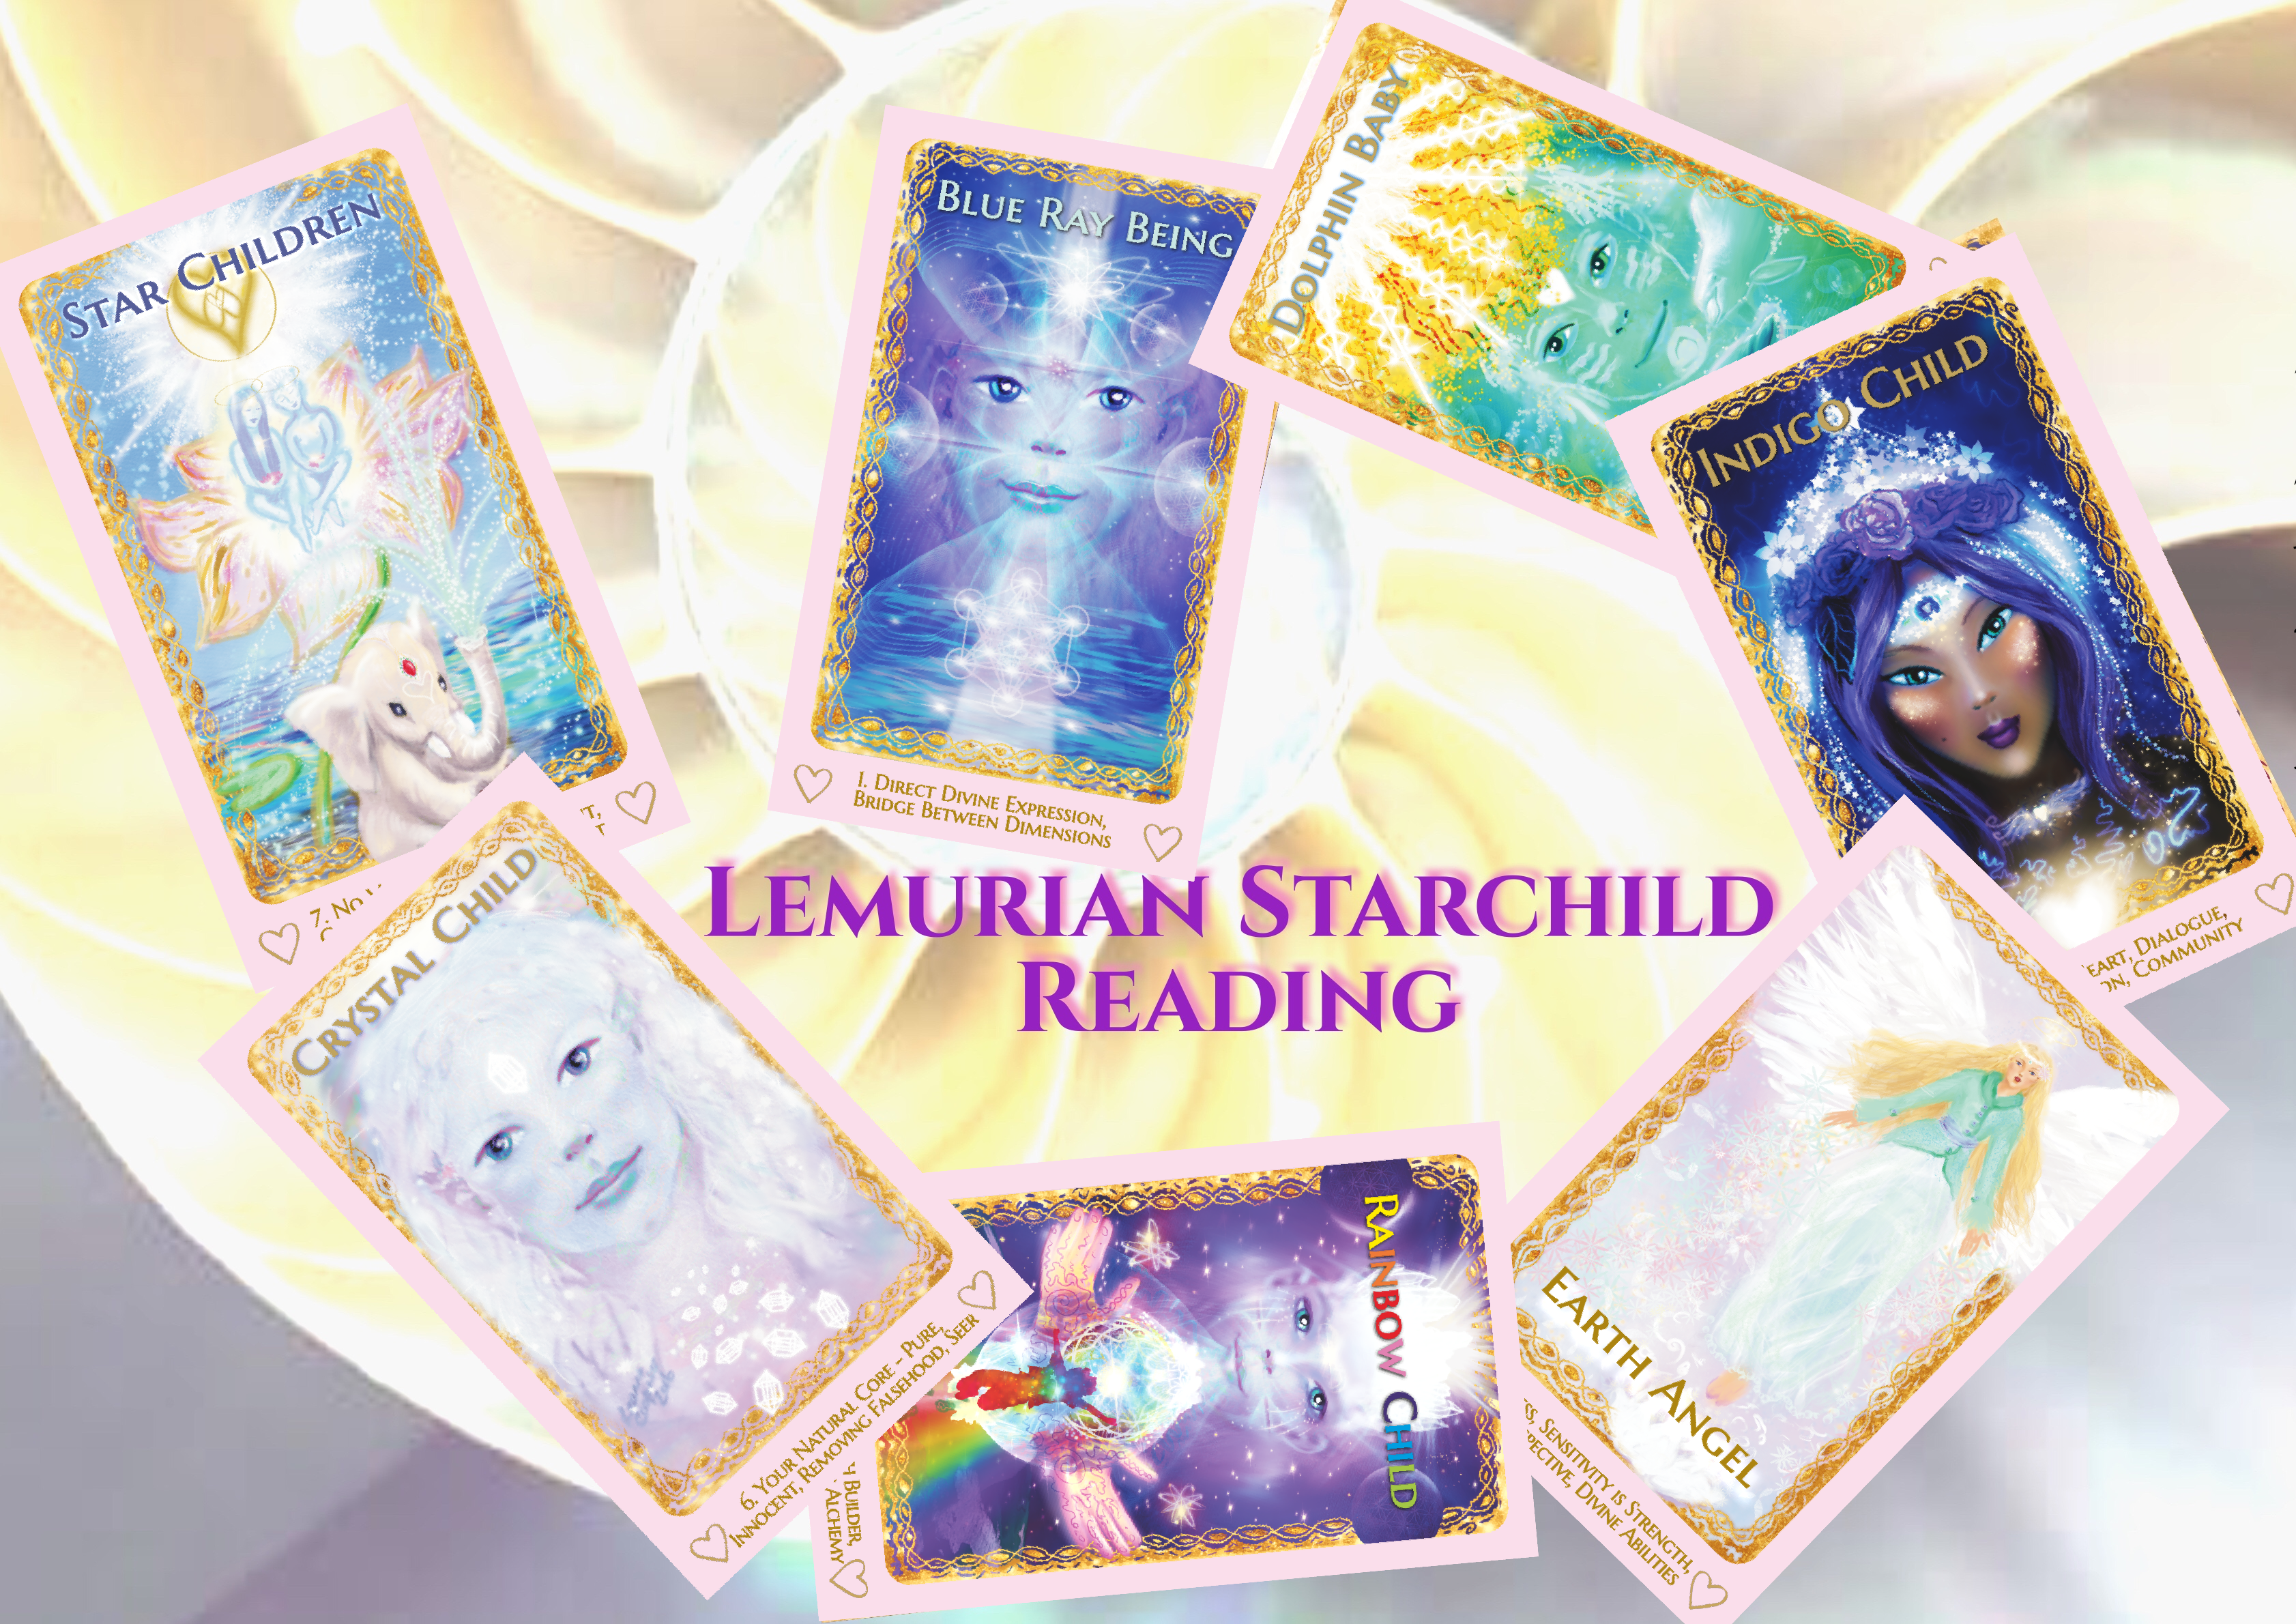 Lemurian Starchild Reading